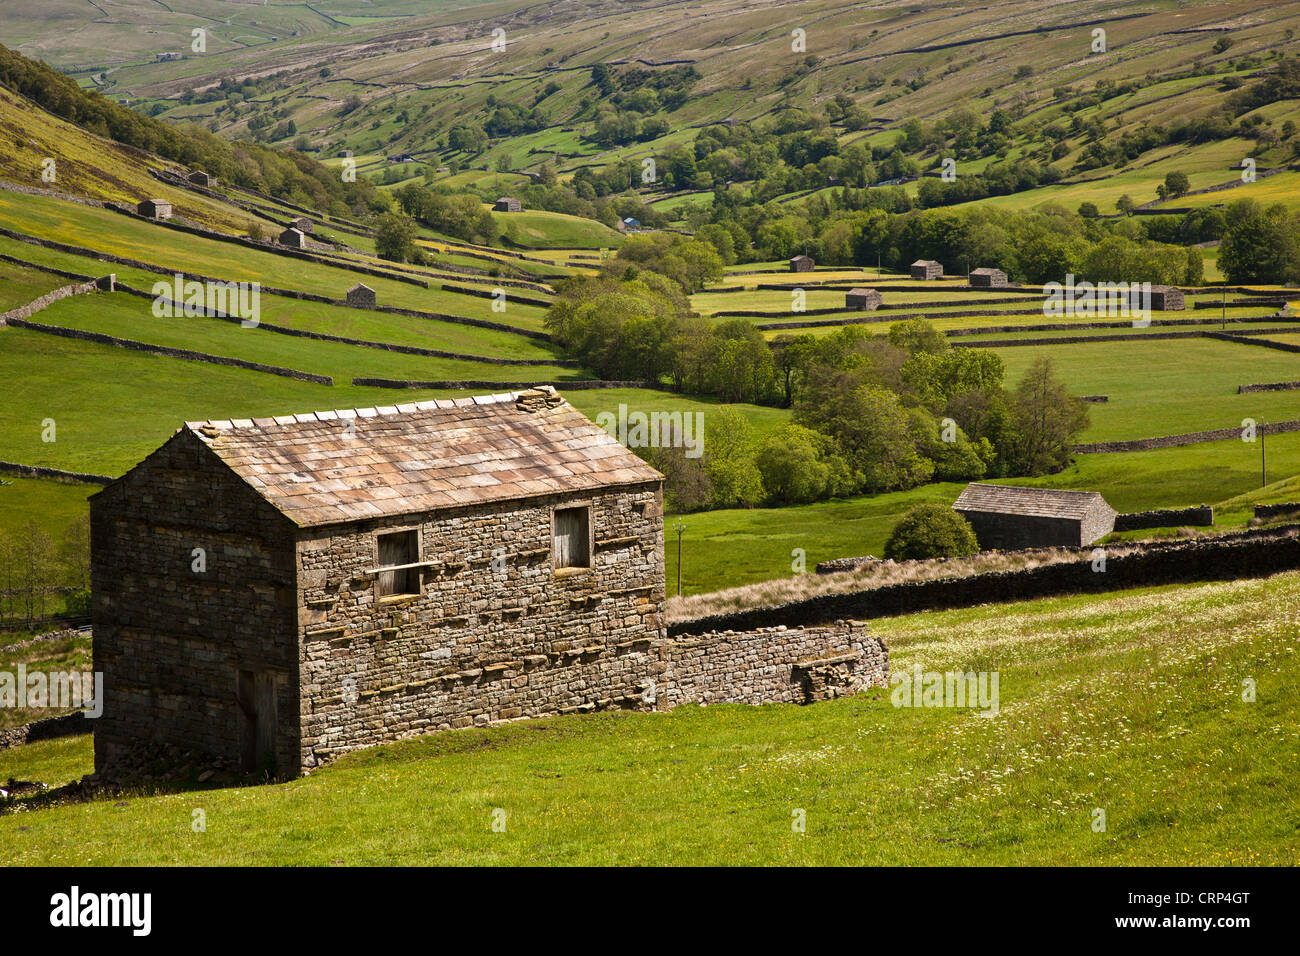 Stone barns near Thwaite in Upper Swaledale in the Yorkshire Dales National Park. - Stock Image